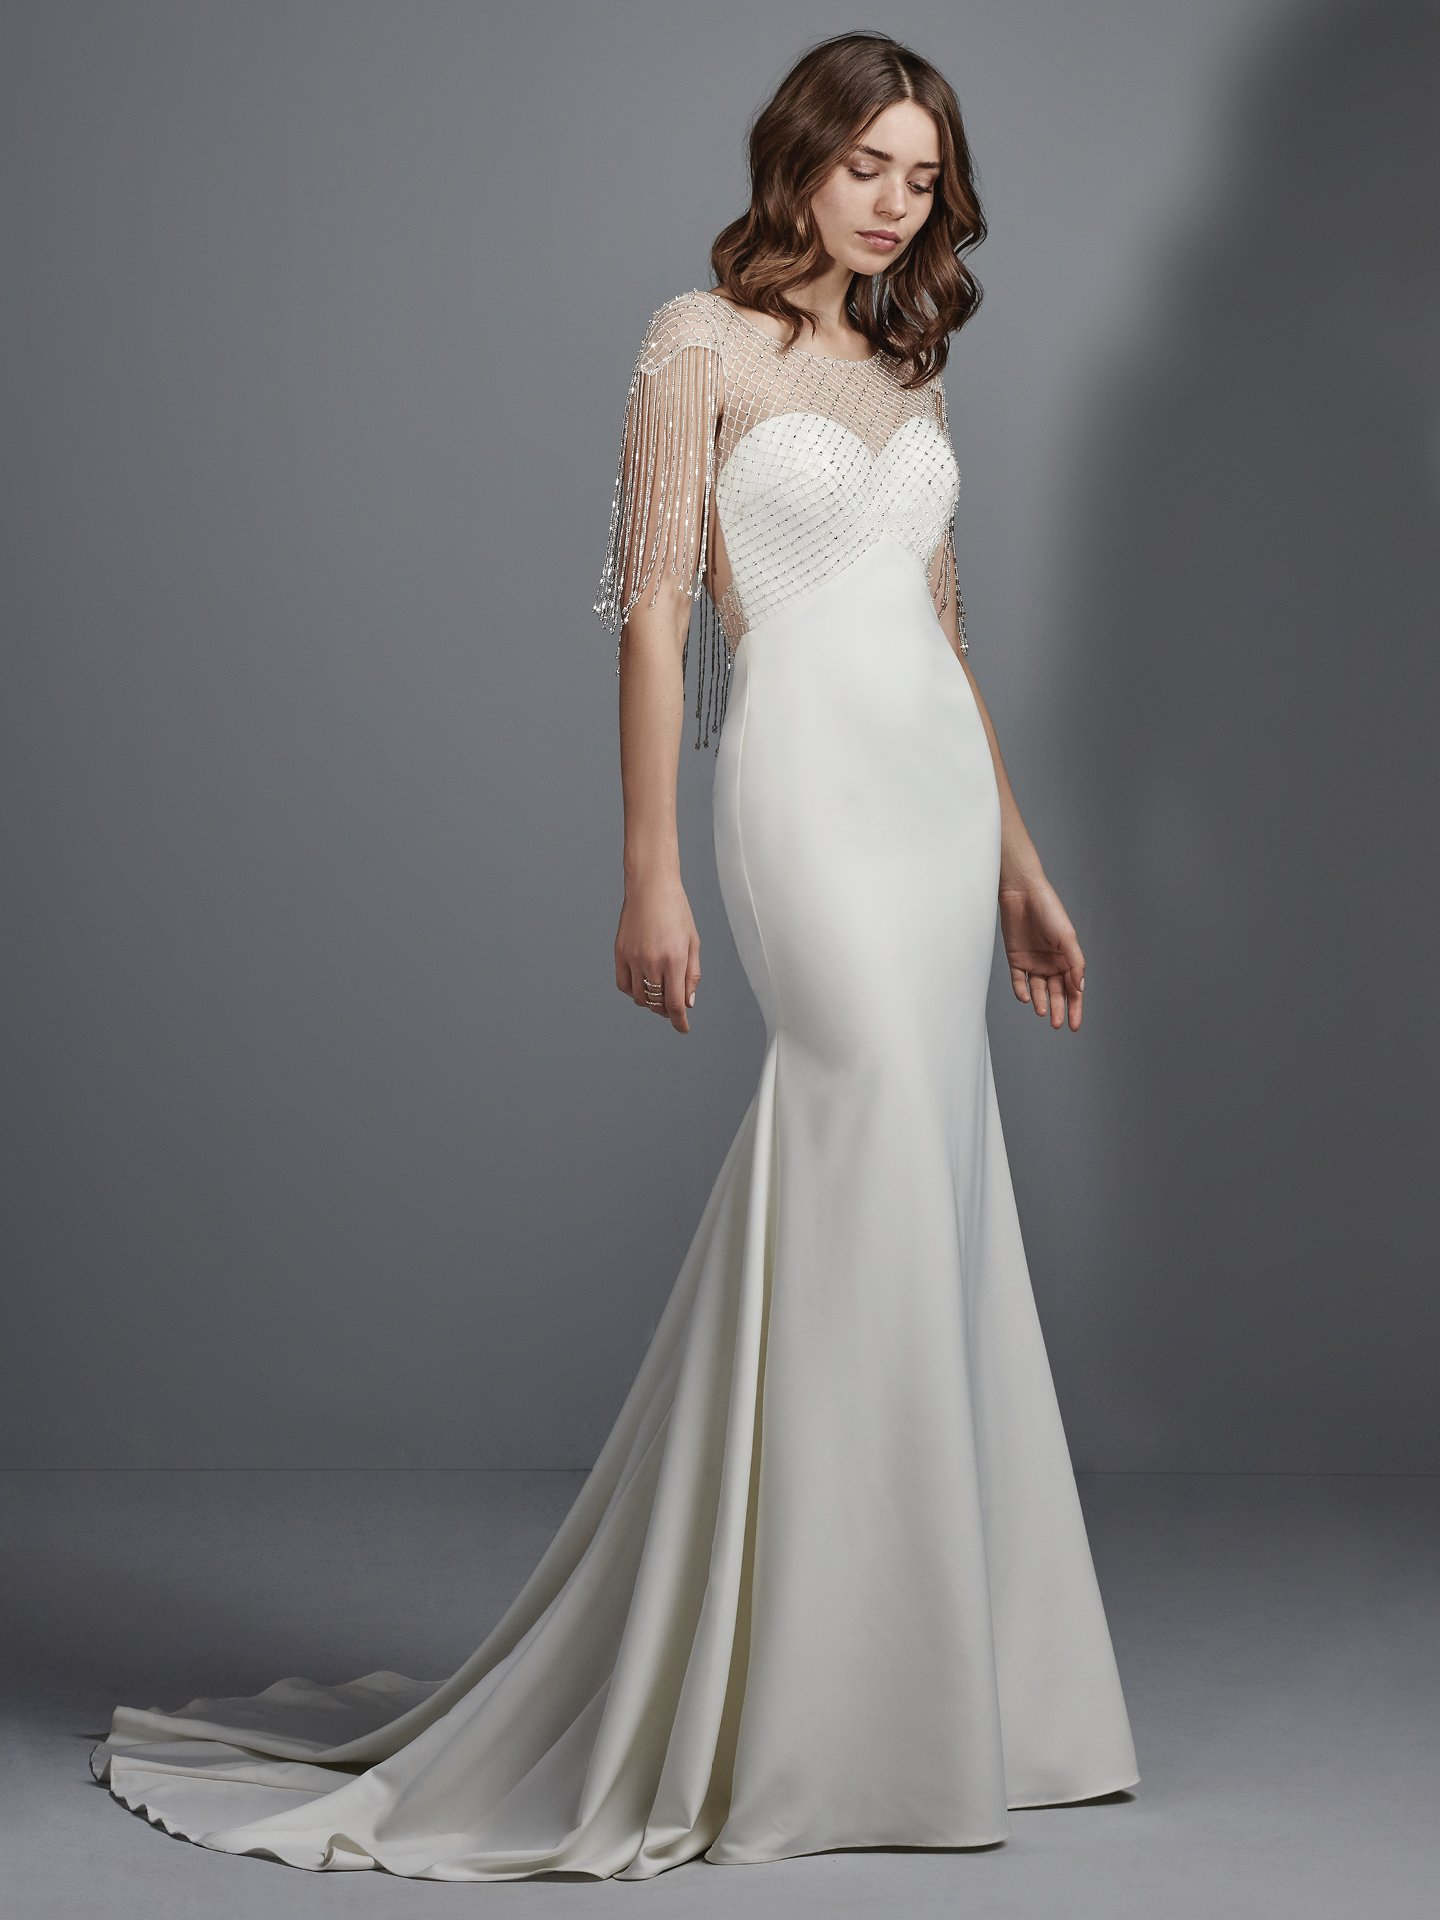 Satin wedding dress Liam by Sottero and Midgley